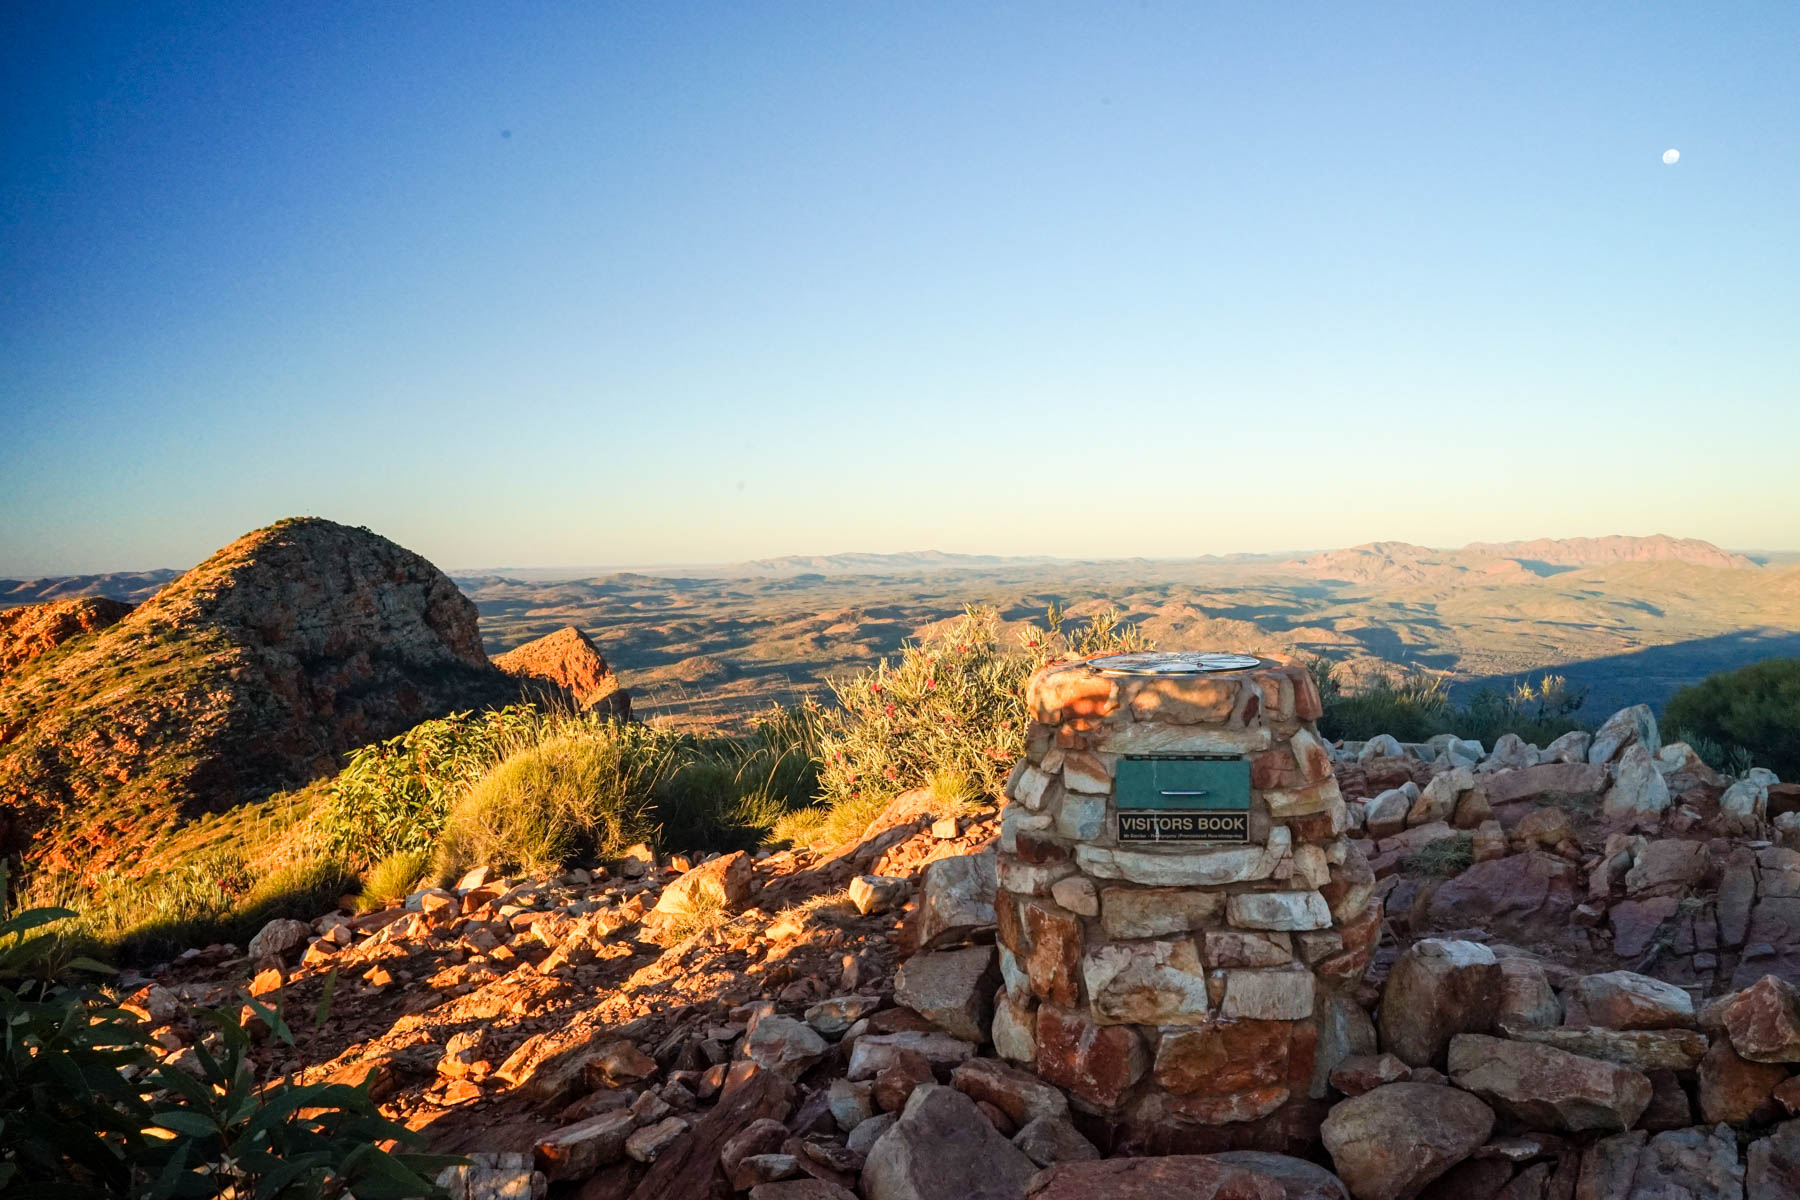 The summit of Mount Sonder at sunset. The summit marks either the start, or end of the Larapinta Trail, depending on which way hikers are walking it.